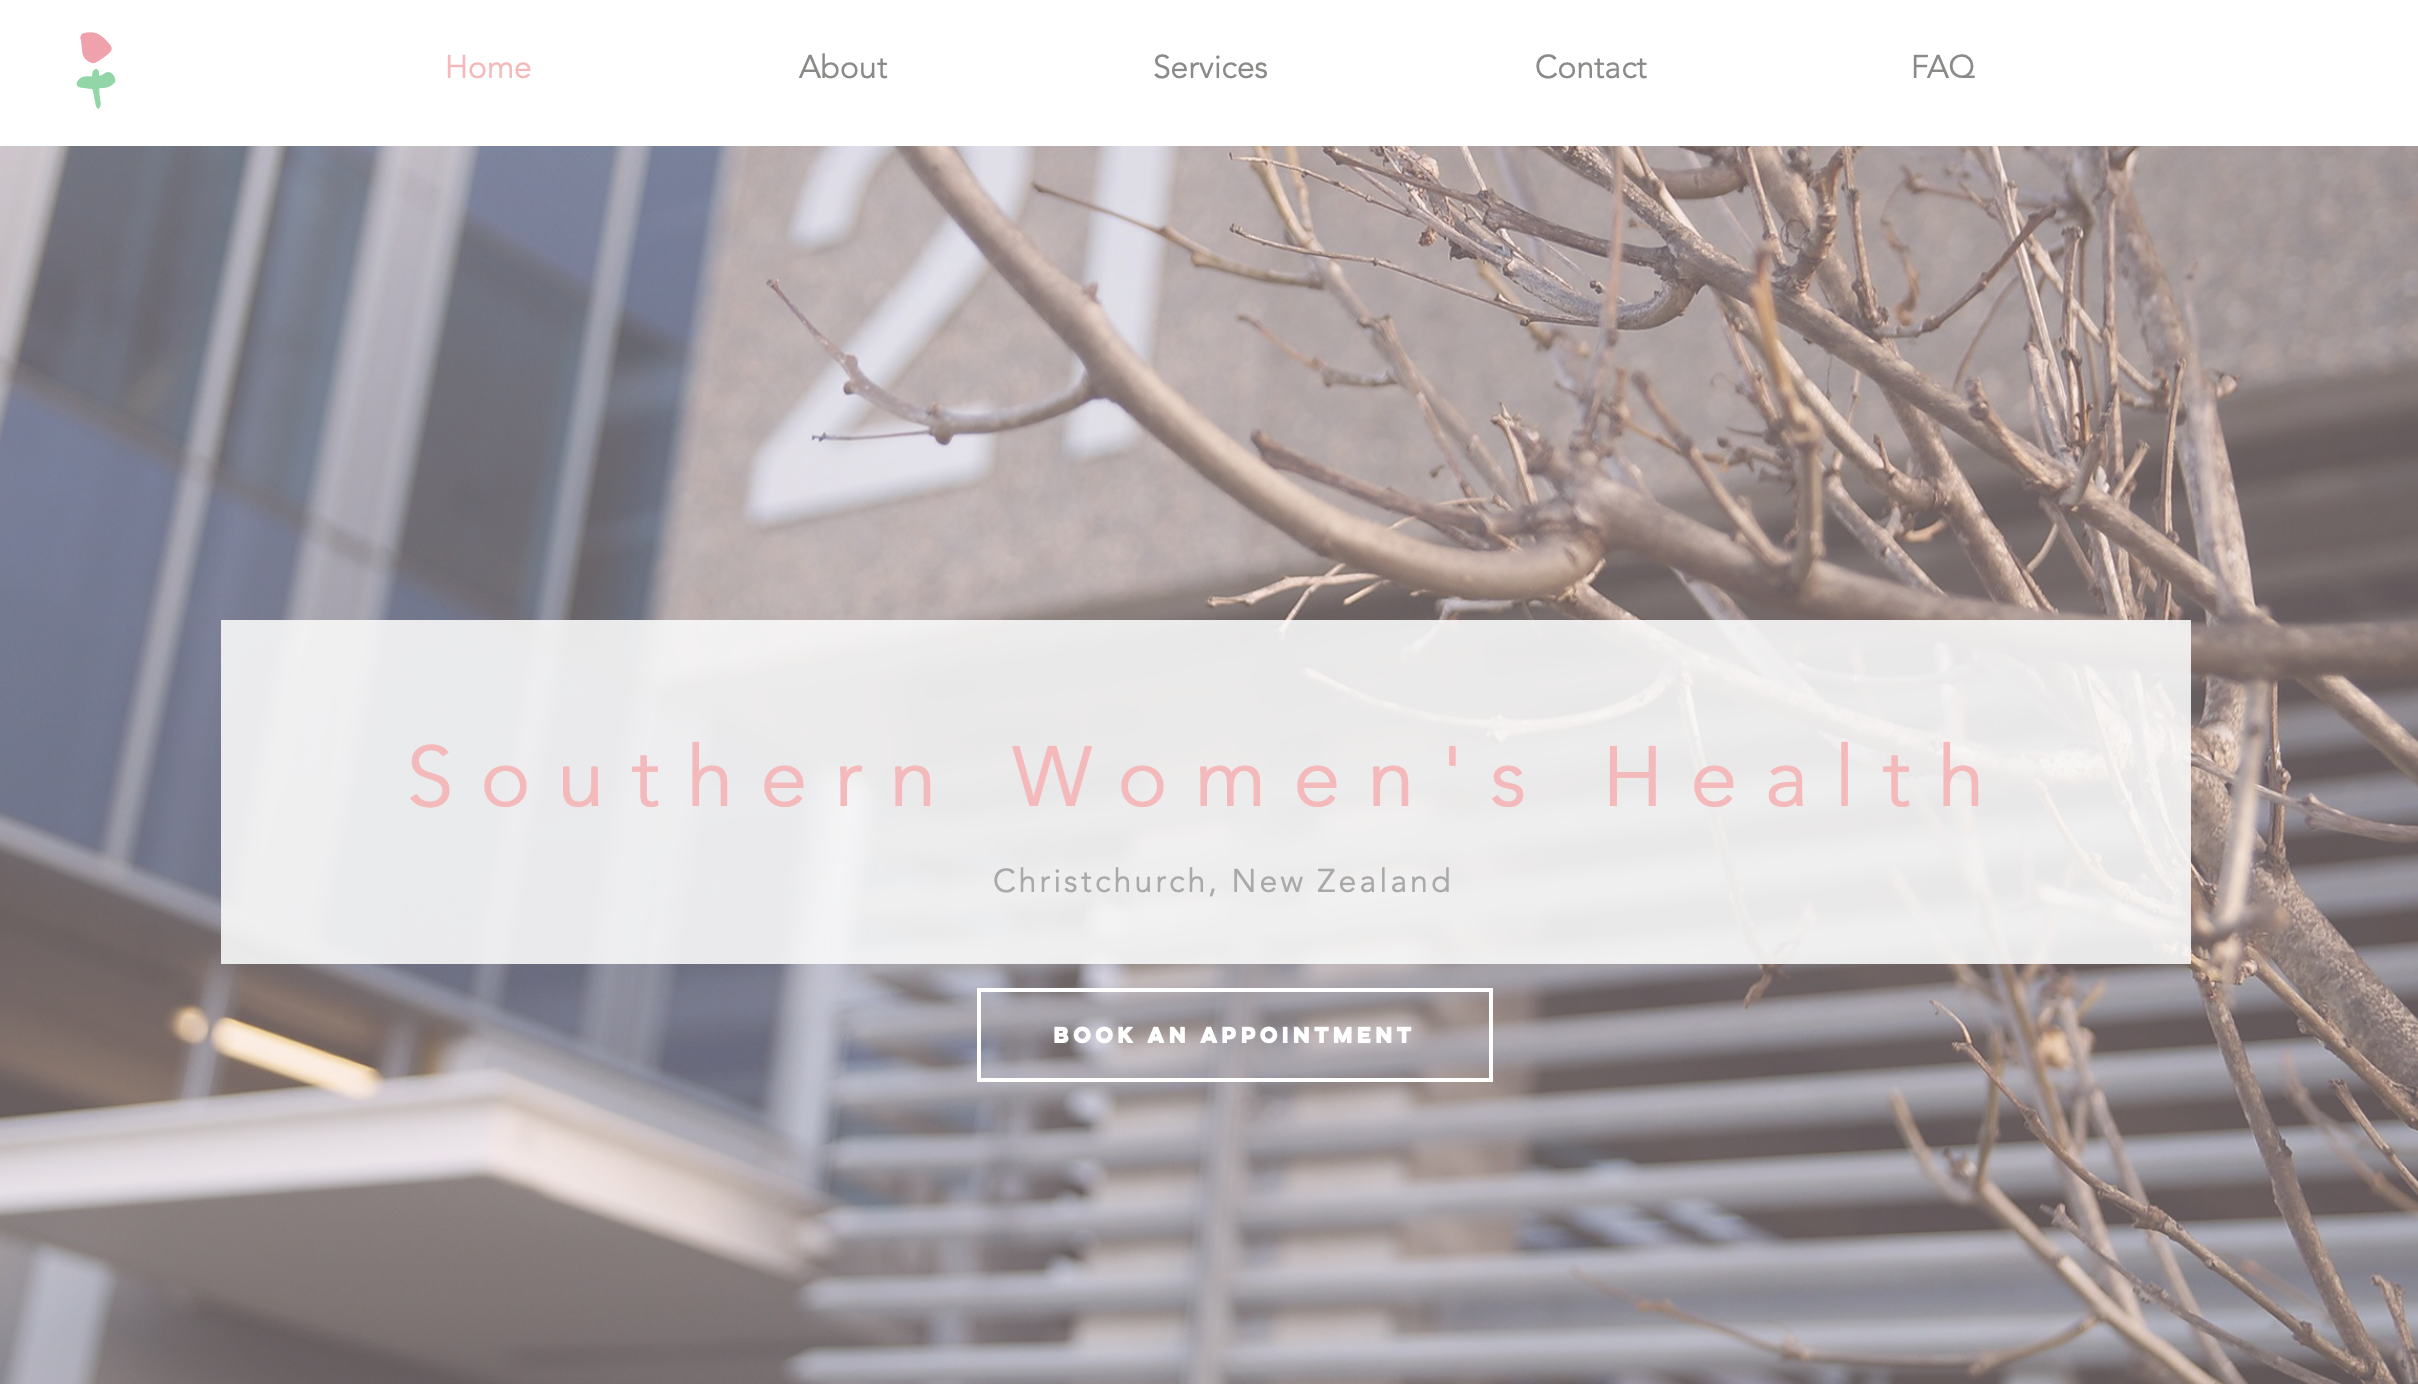 Southern Women's Health  - Graphic designer and web designer